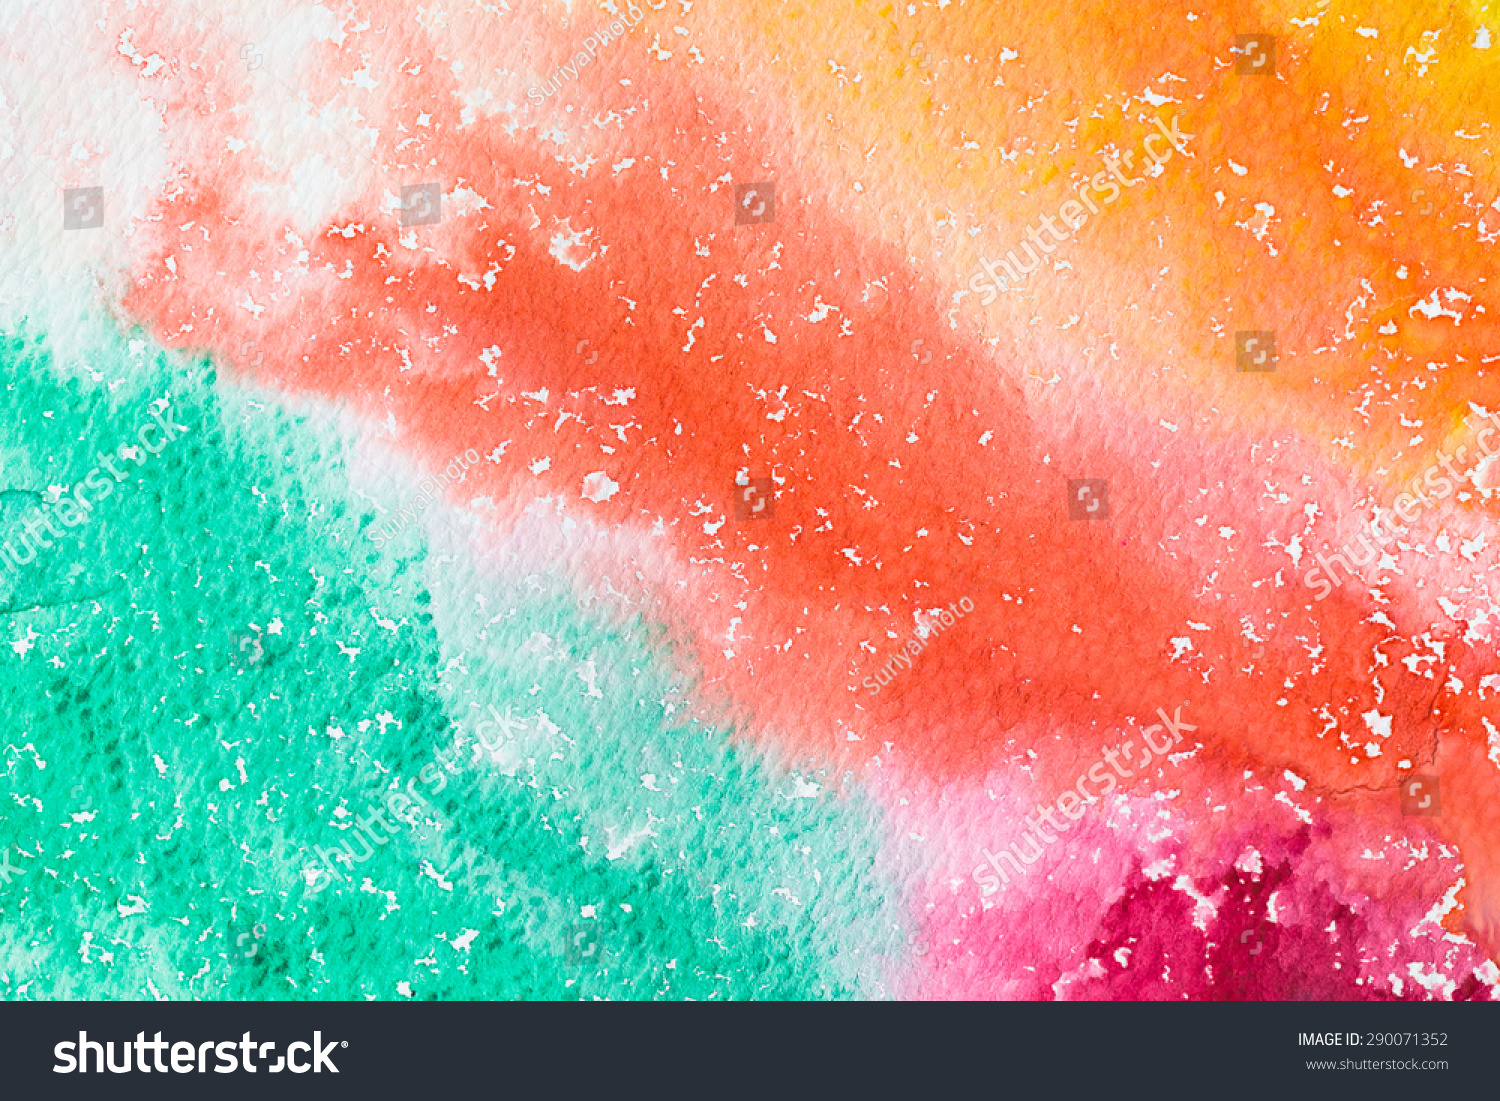 Hires Close Water Color Painting On Stock Photo 290071352 ...